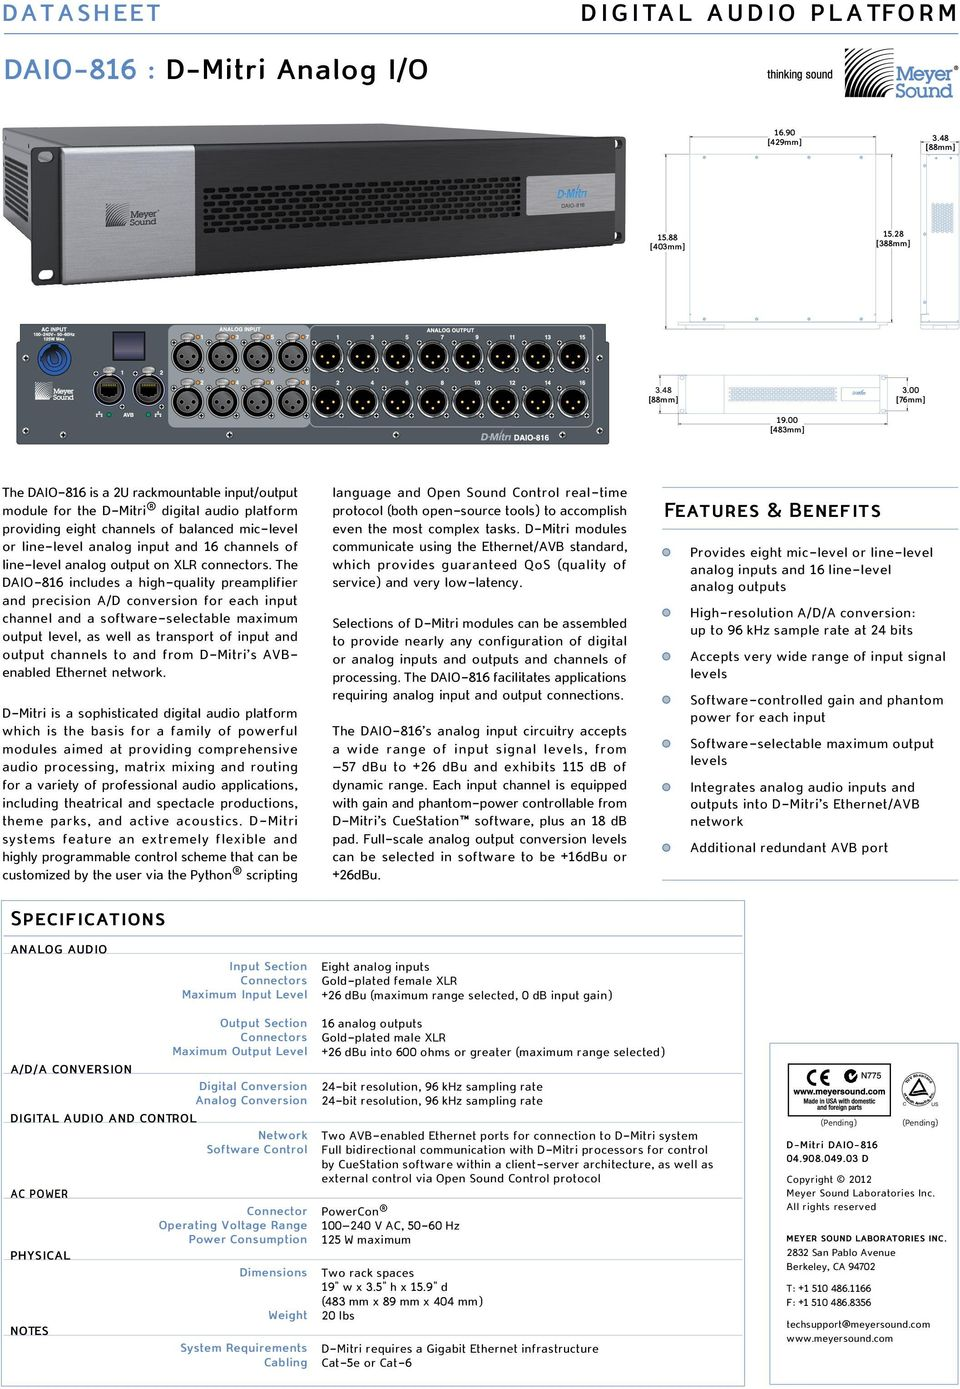 The DAIO-816 includes a high-quality preamplifier and precision A/D conversion for each input channel and a software-selectable maximum output level, as well as transport of input and output channels